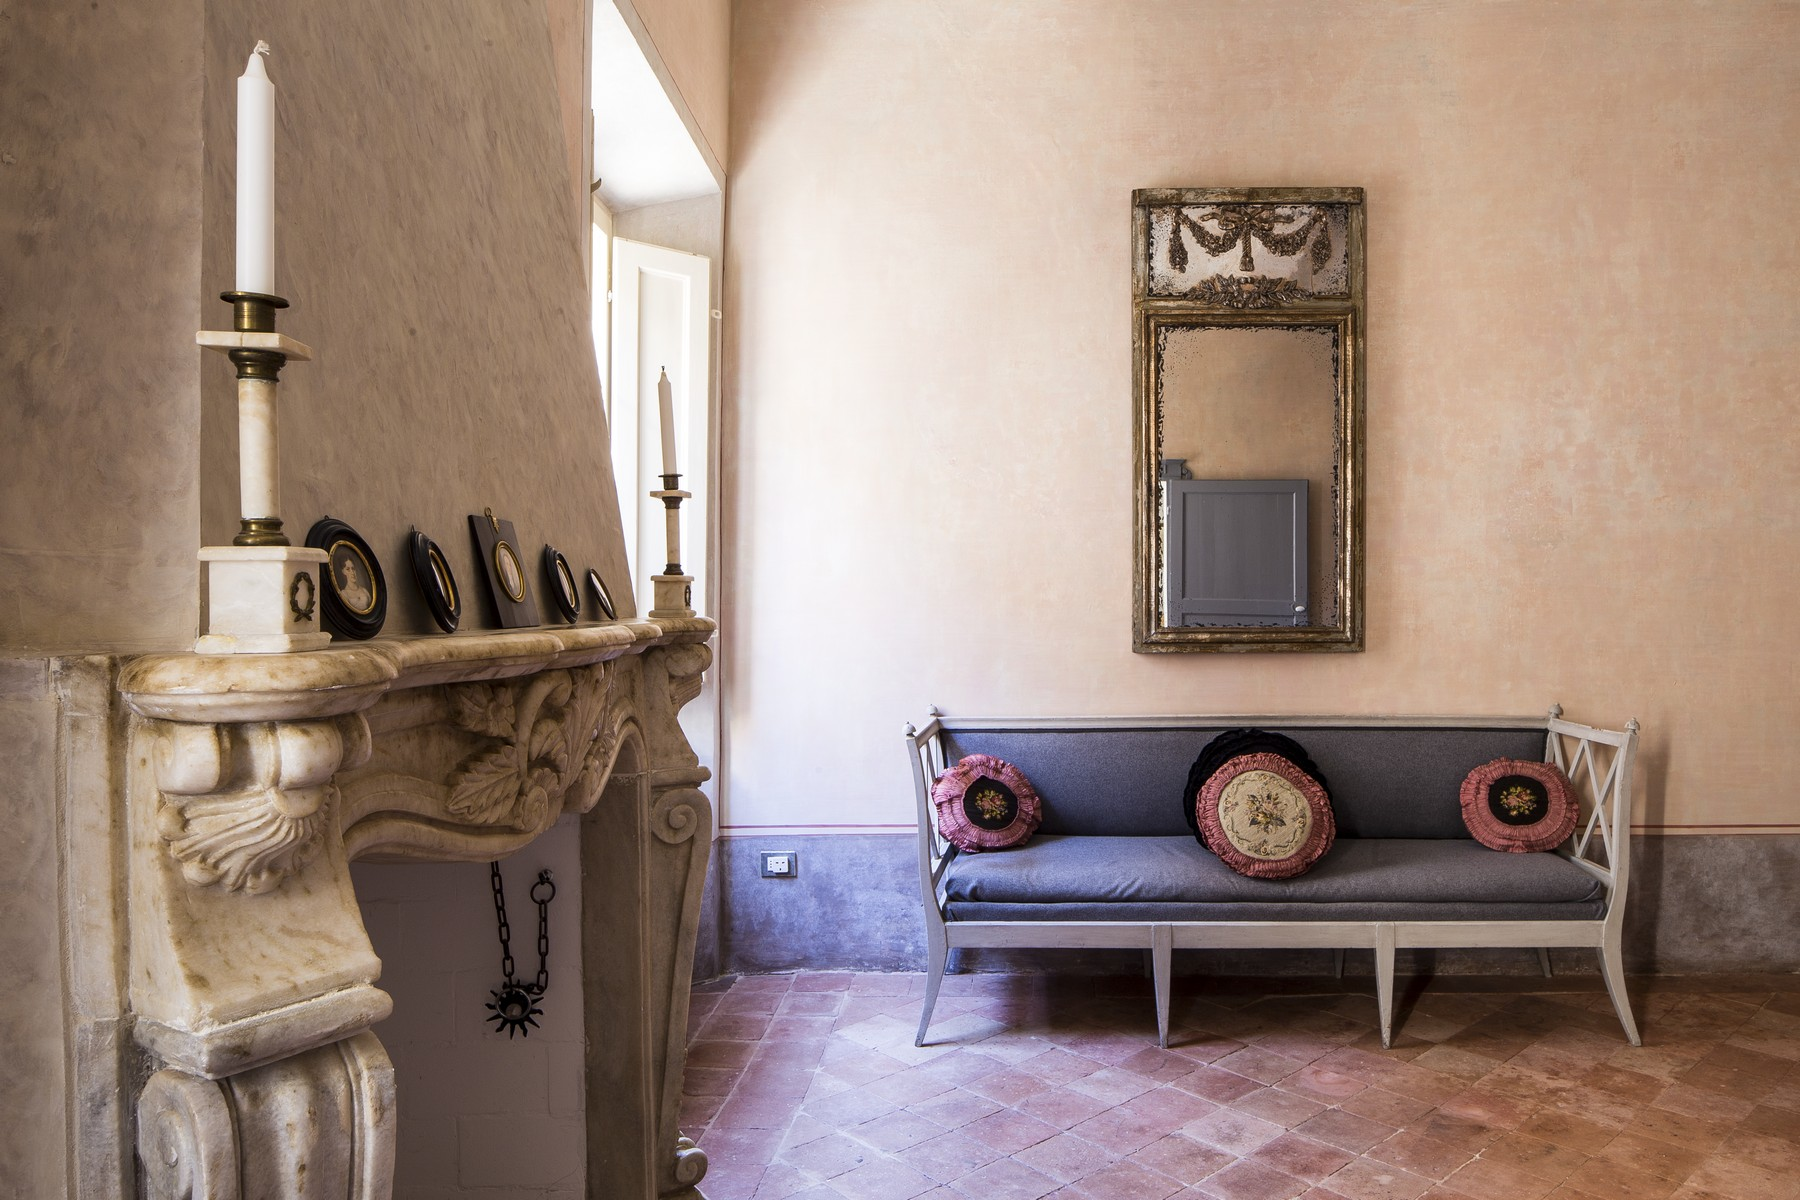 Additional photo for property listing at Scattolari Palace, Mondaino Via Roma Mondaino, Rimini 47836 Italie